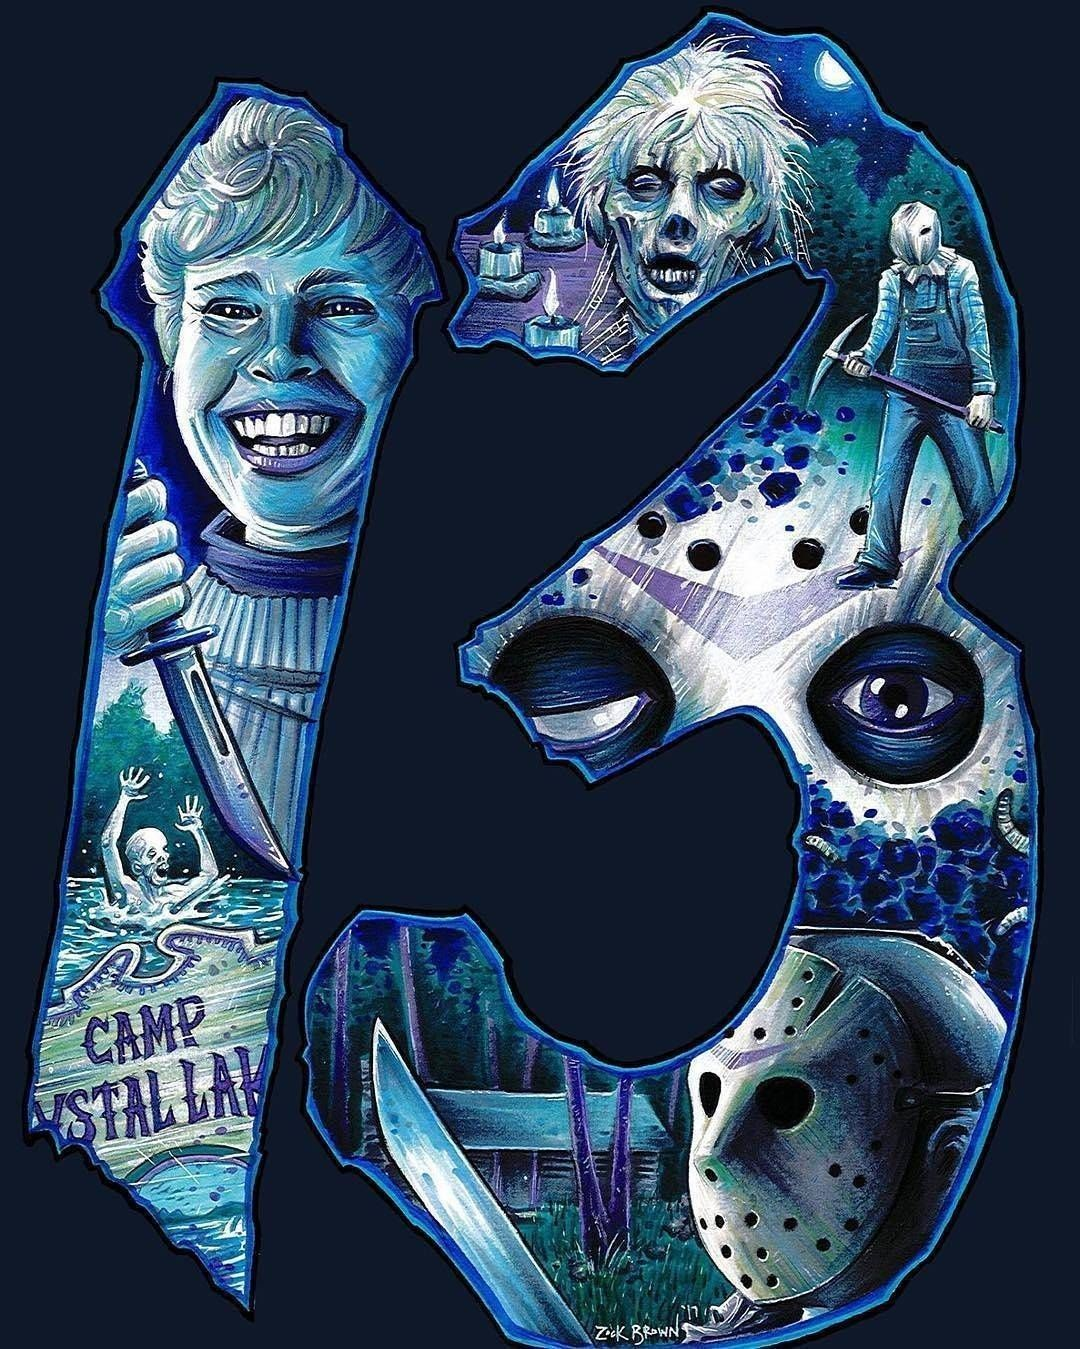 Pin by Anthony Delabrue on Jason voorhees in 2020 Horror